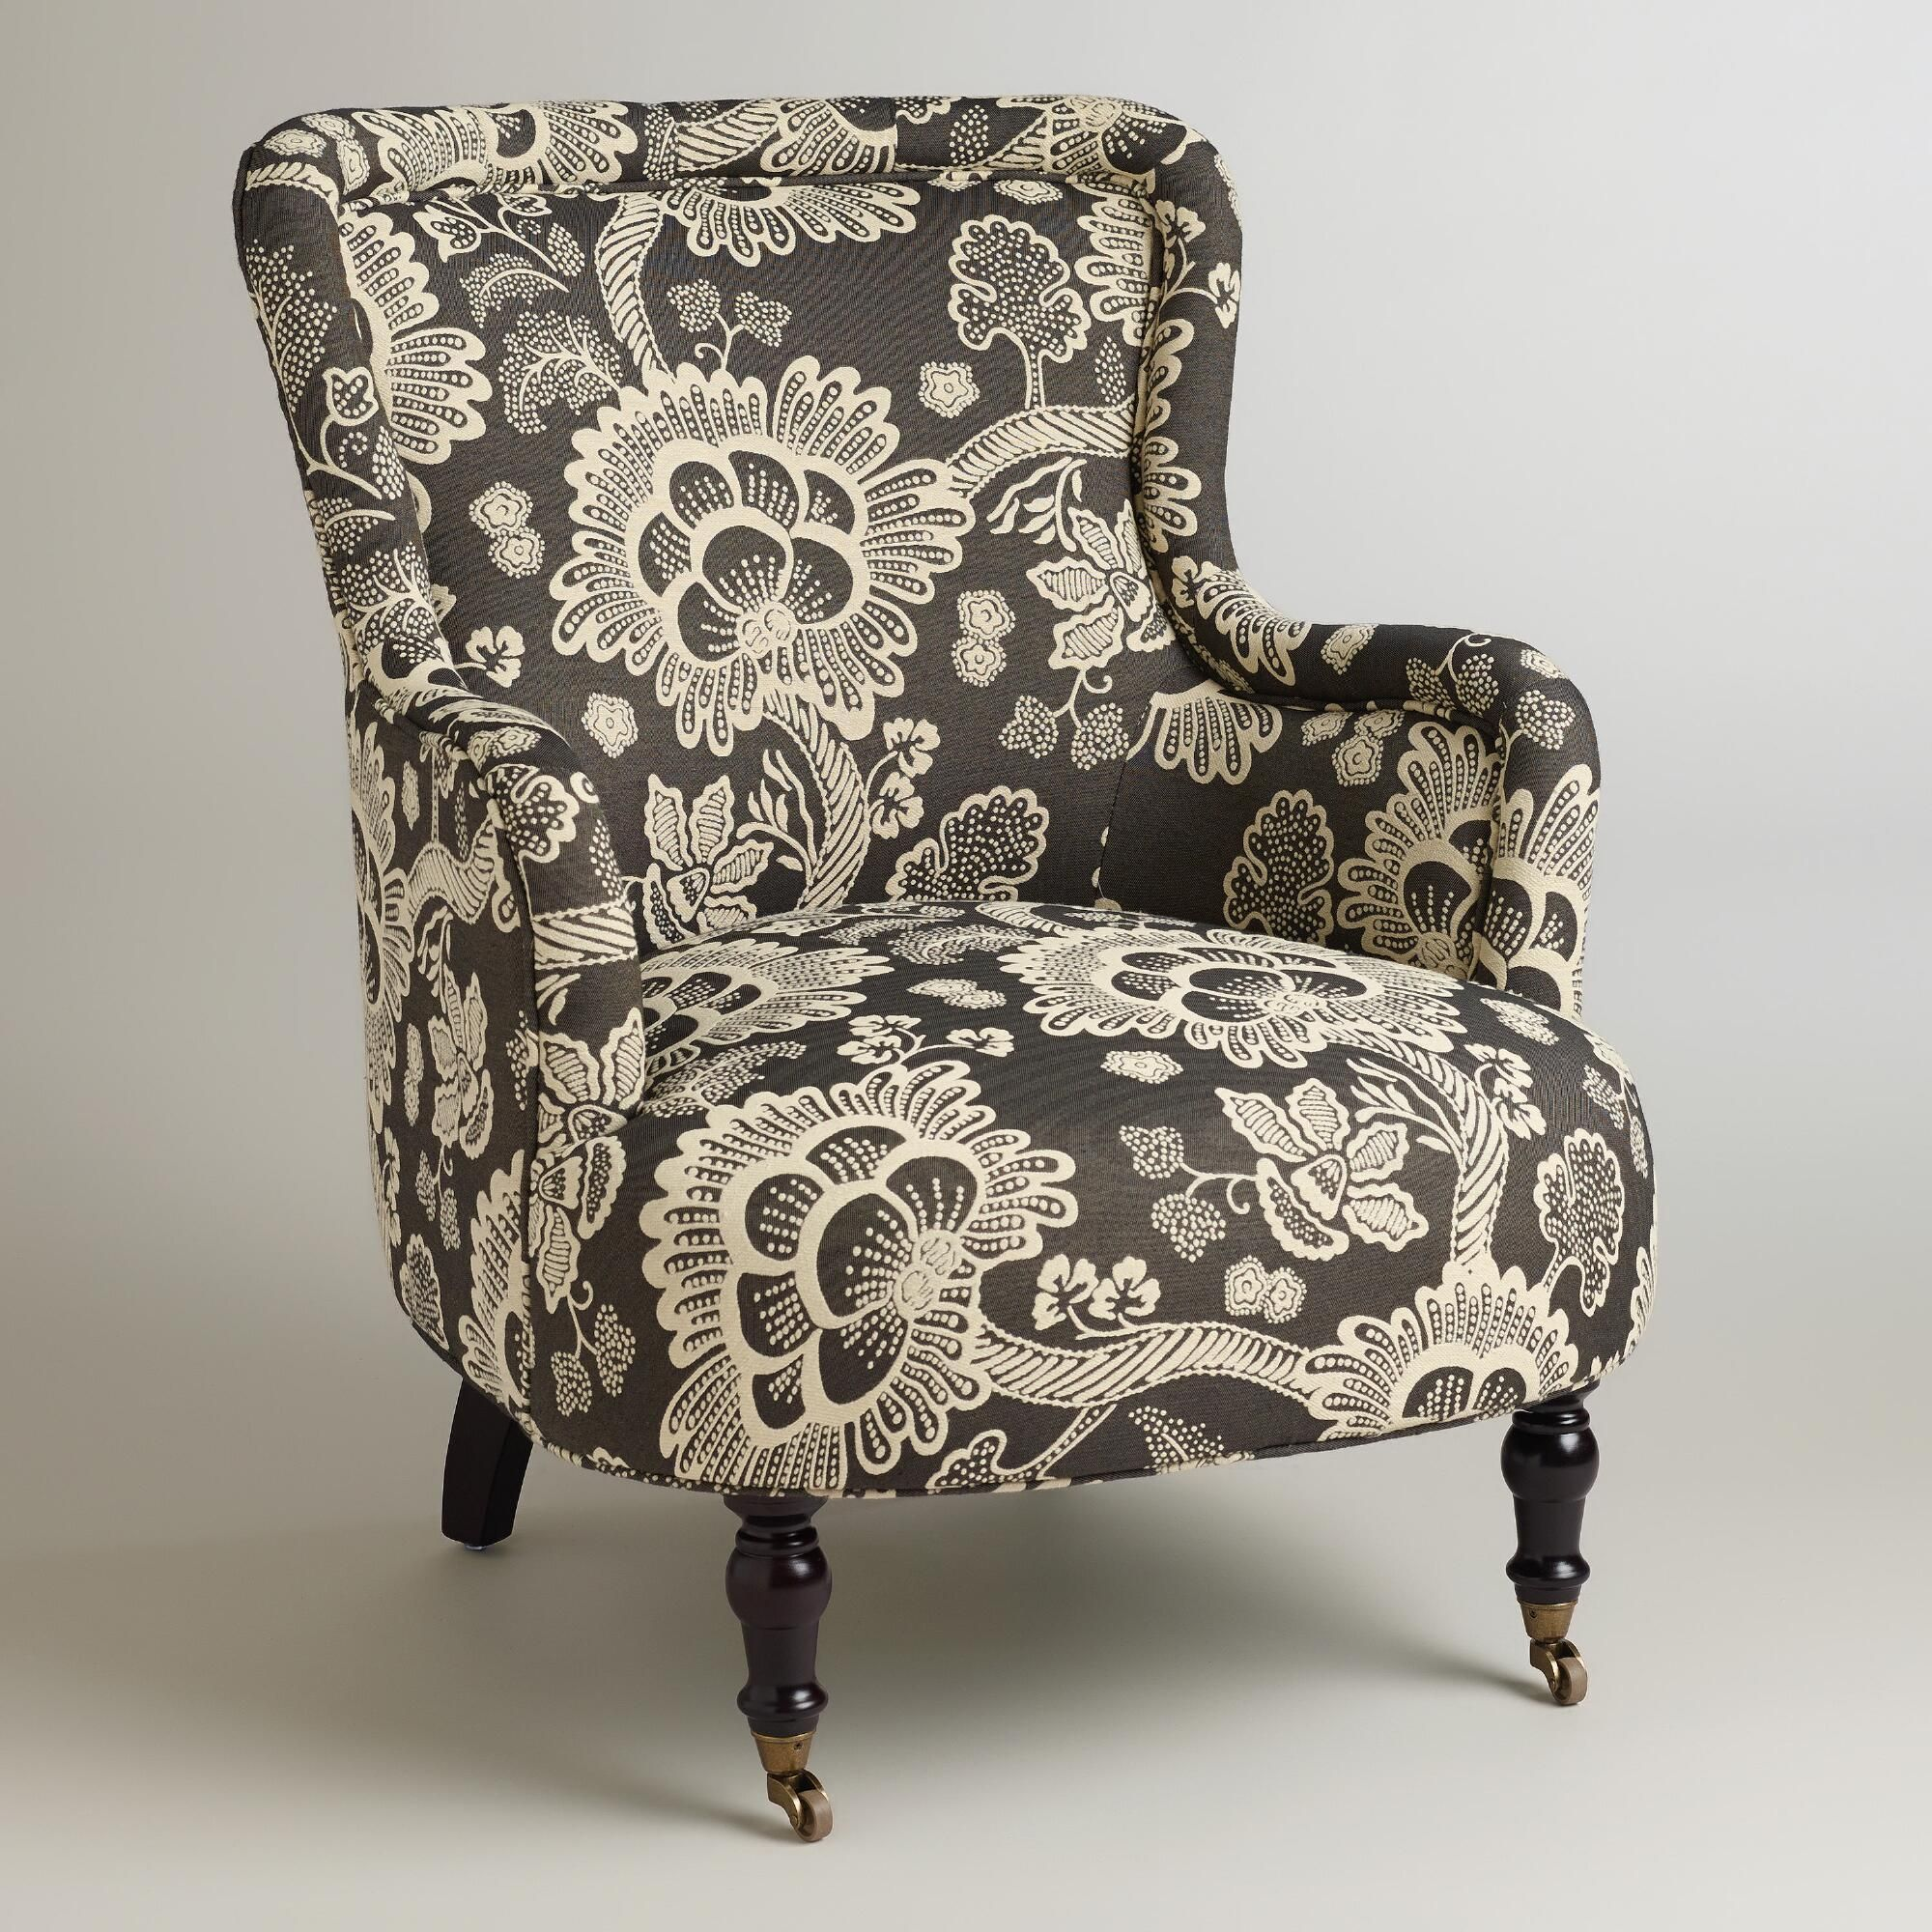 Black and white floral reading chair reading chair